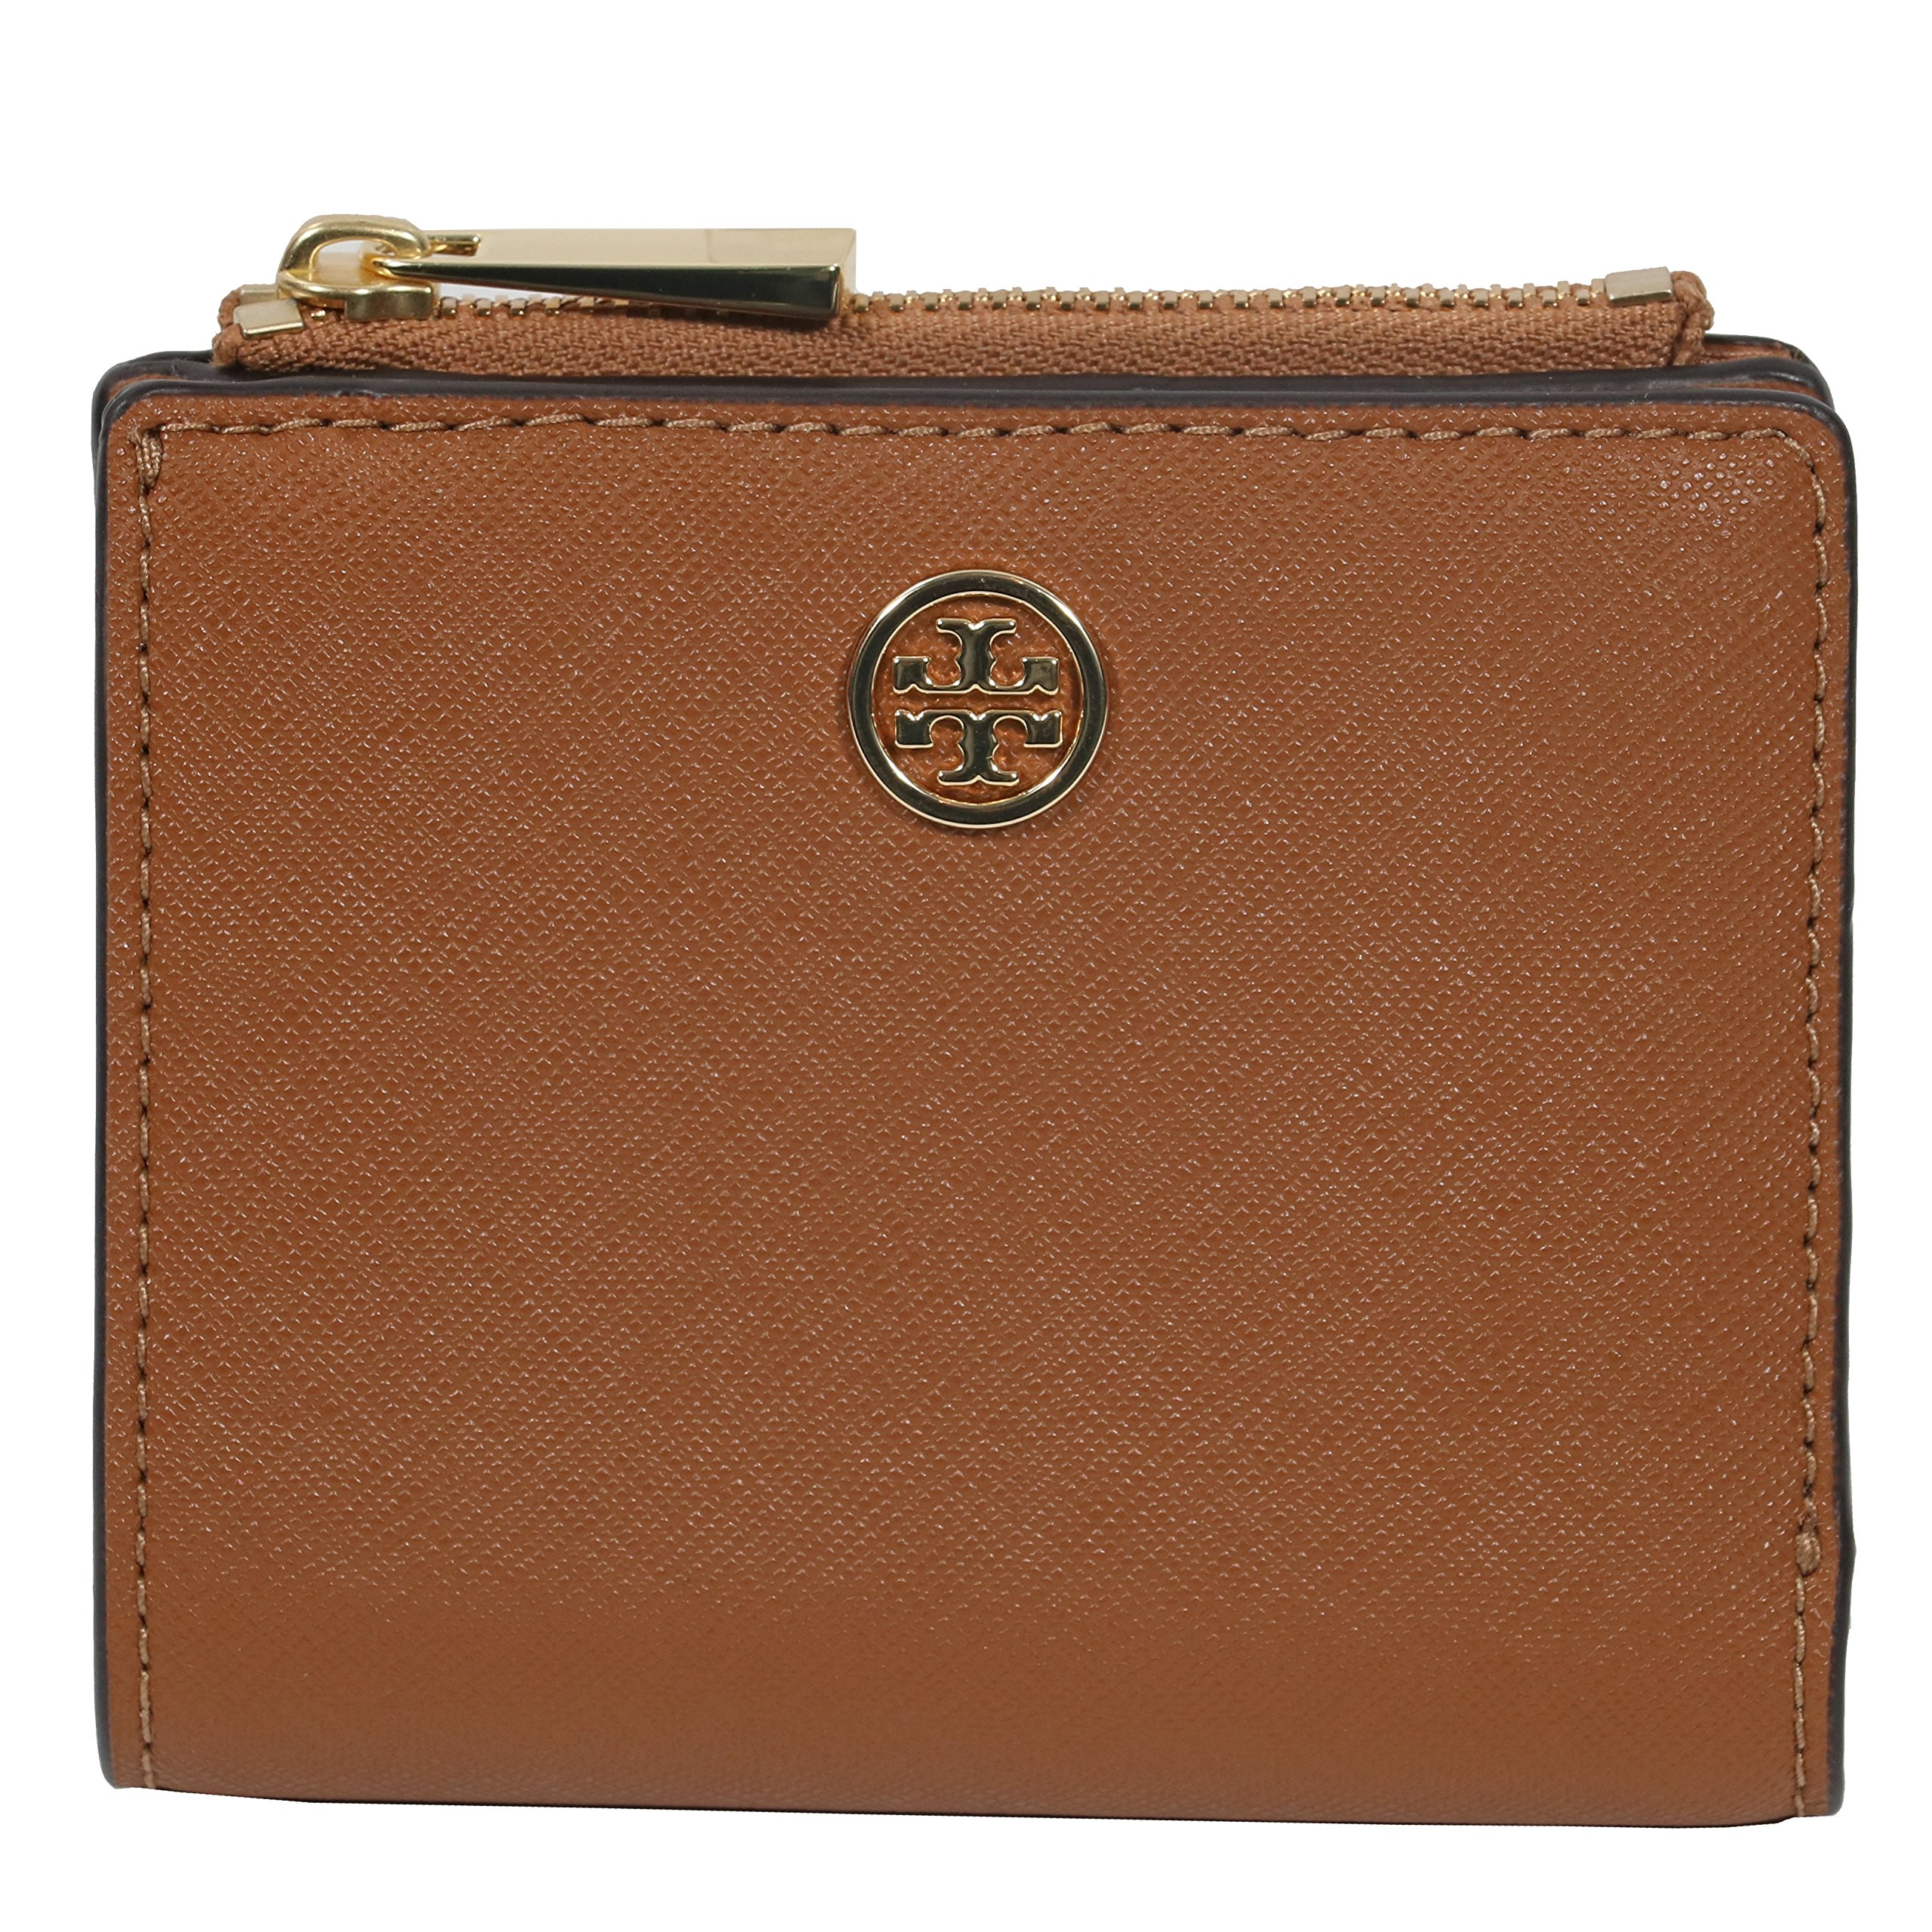 Tory Burch Card Case Wallet Robinson Mini Leather